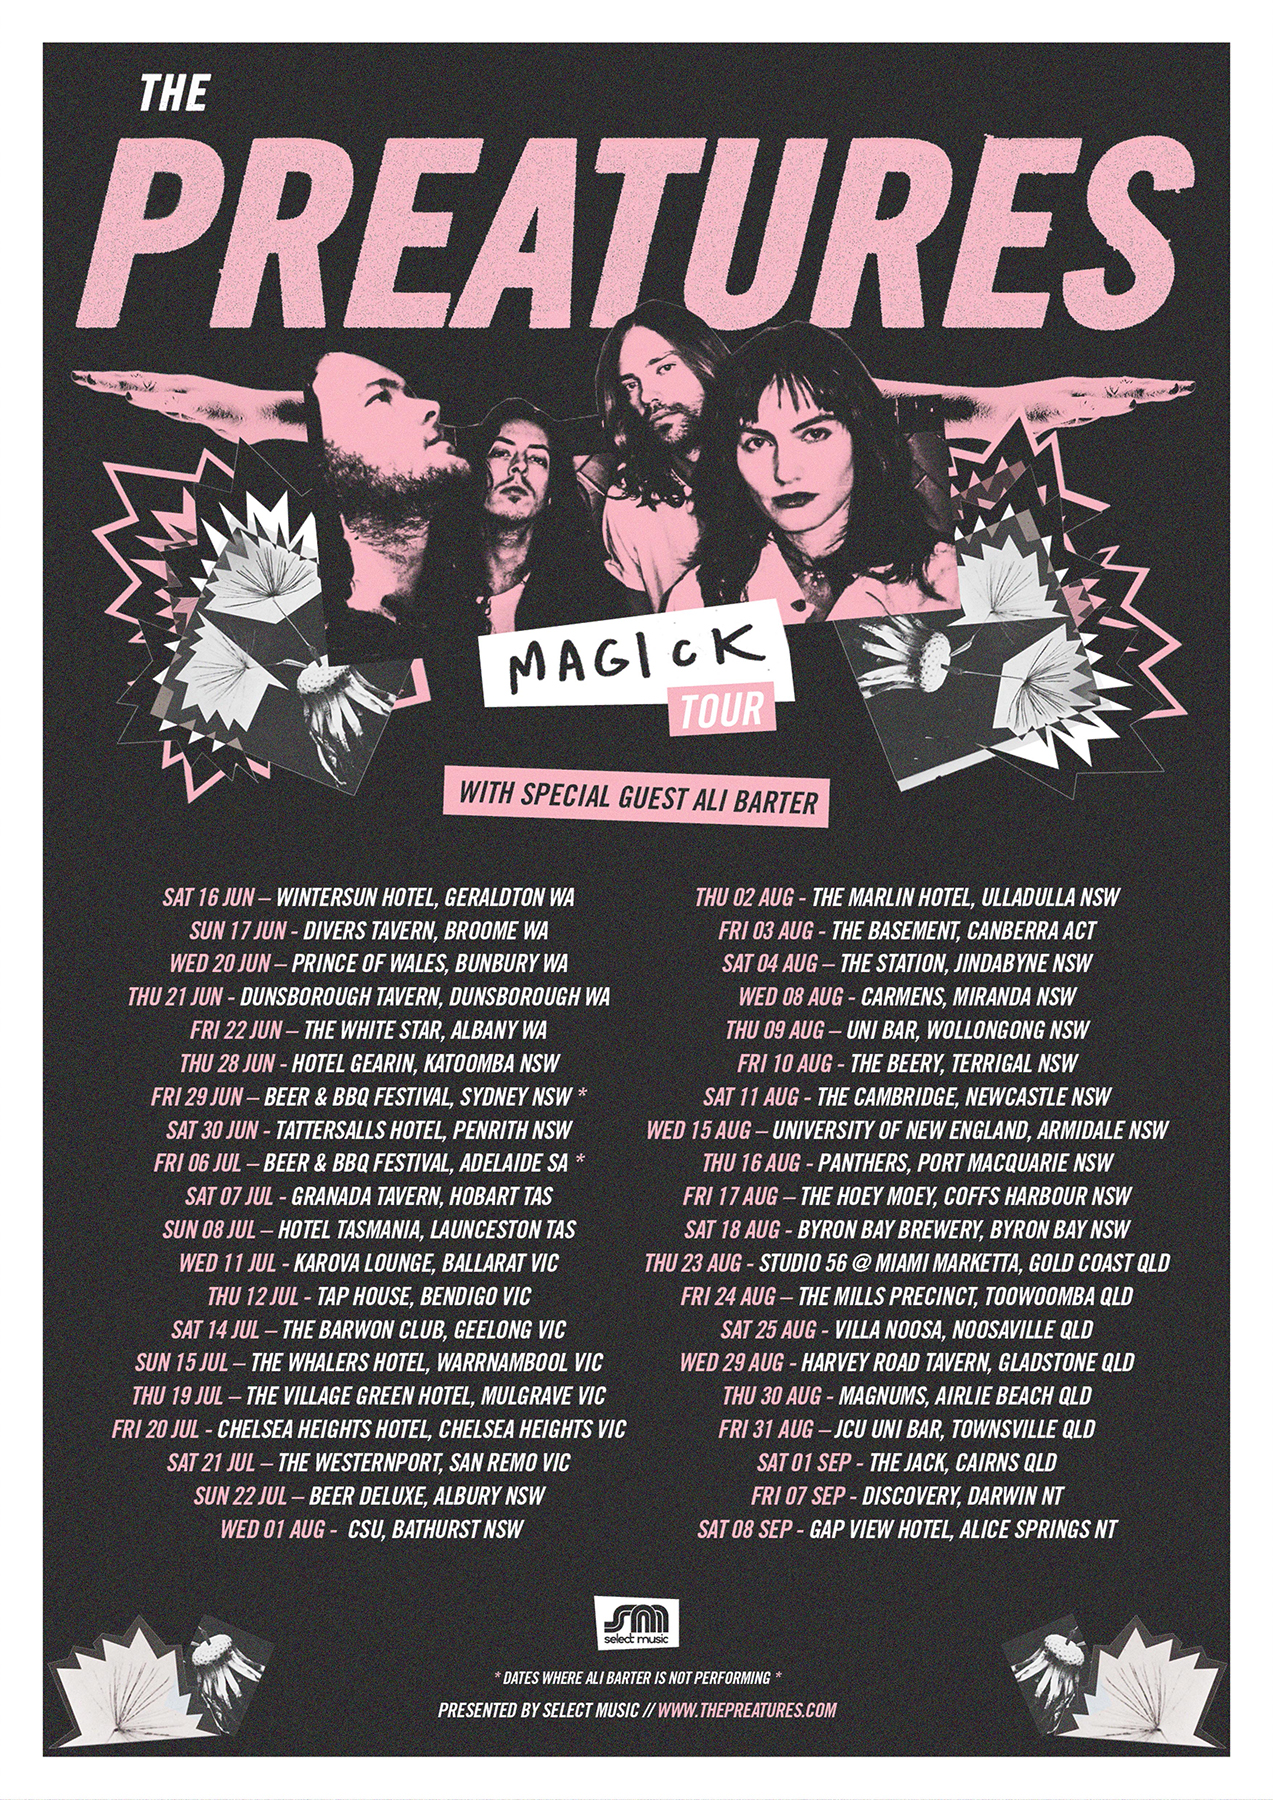 The Preatures - Magick Tour Poster.jpg